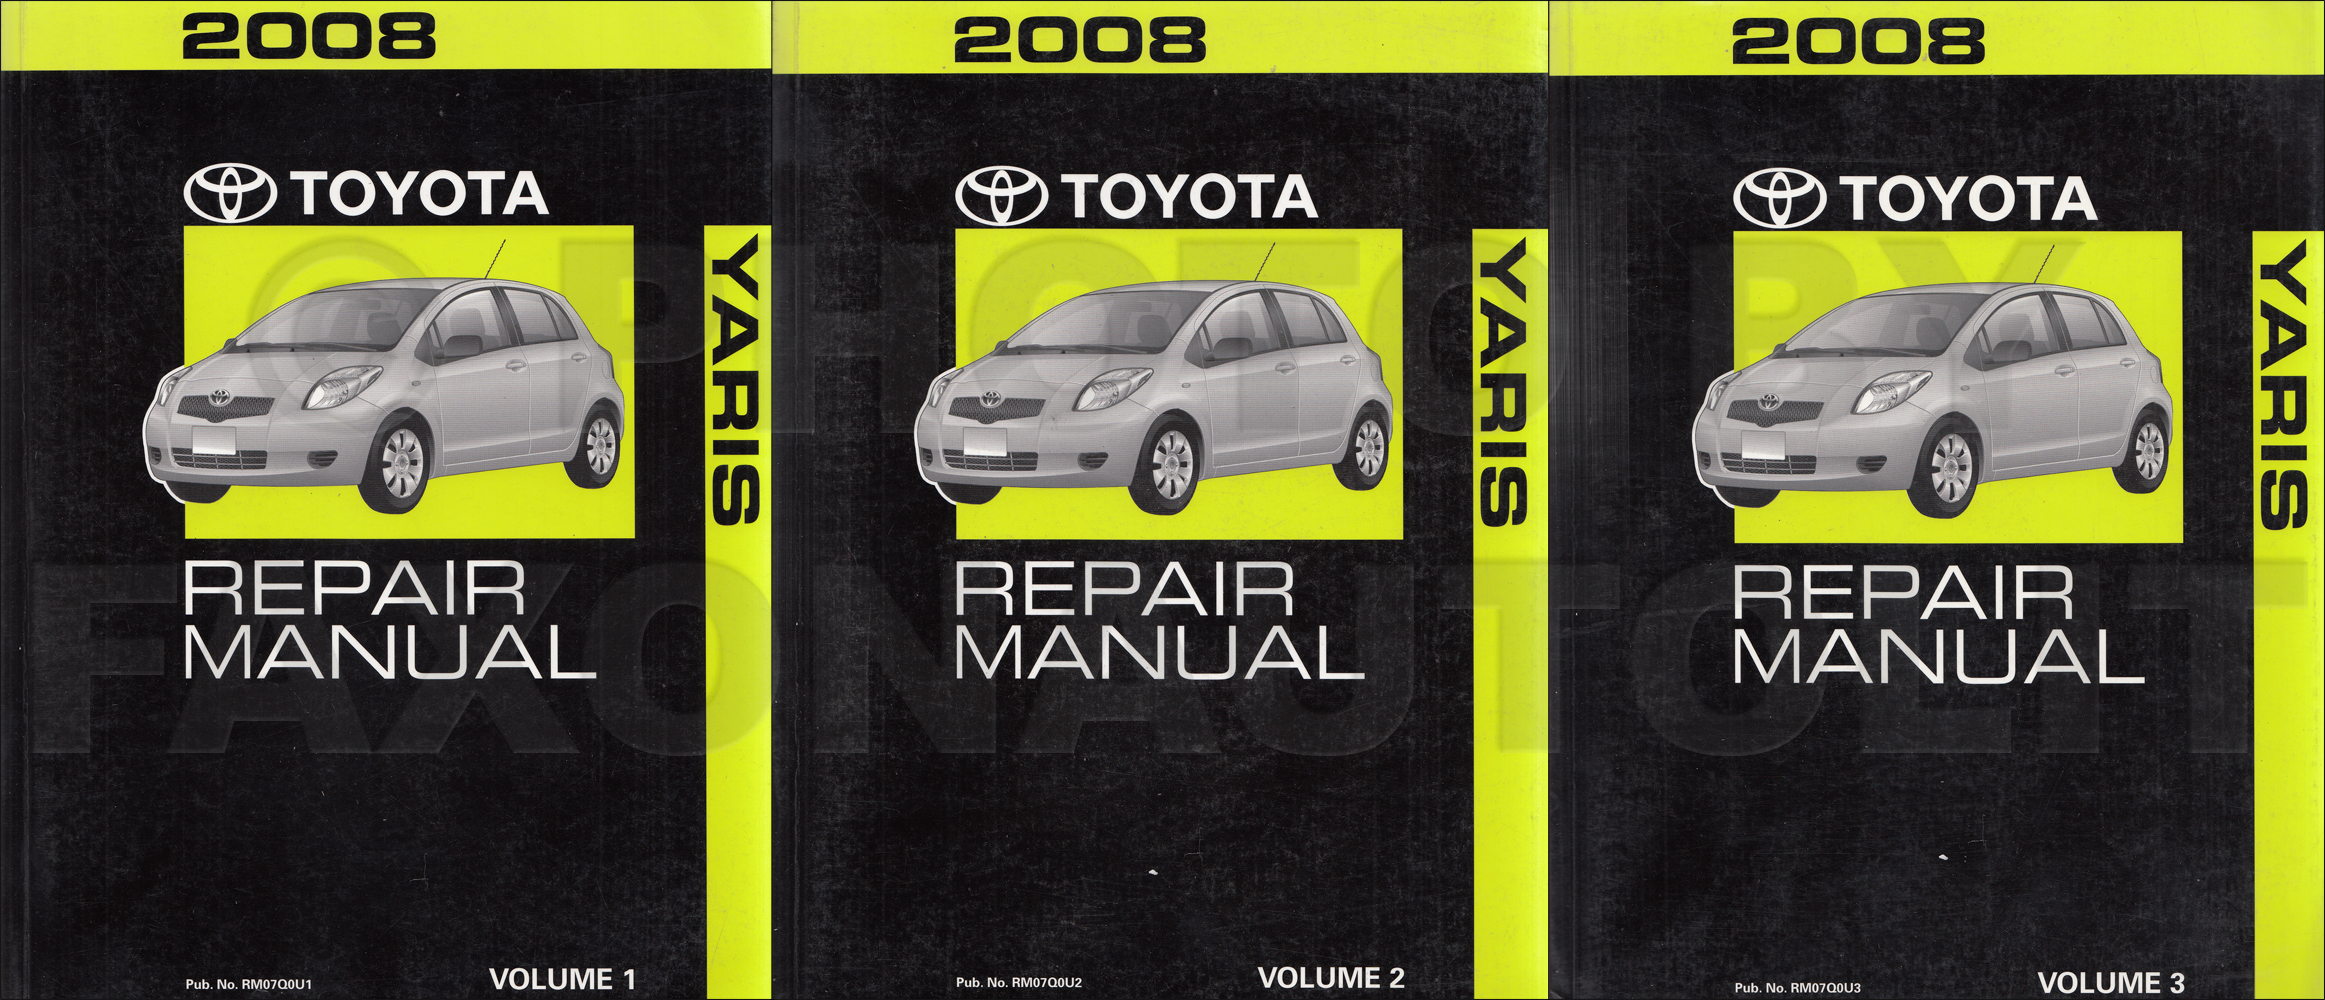 2008 Toyota Yaris Service Repair Shop Manual Set Oem 2 Volume Set And The Electrical Wiring Diagrams Manual